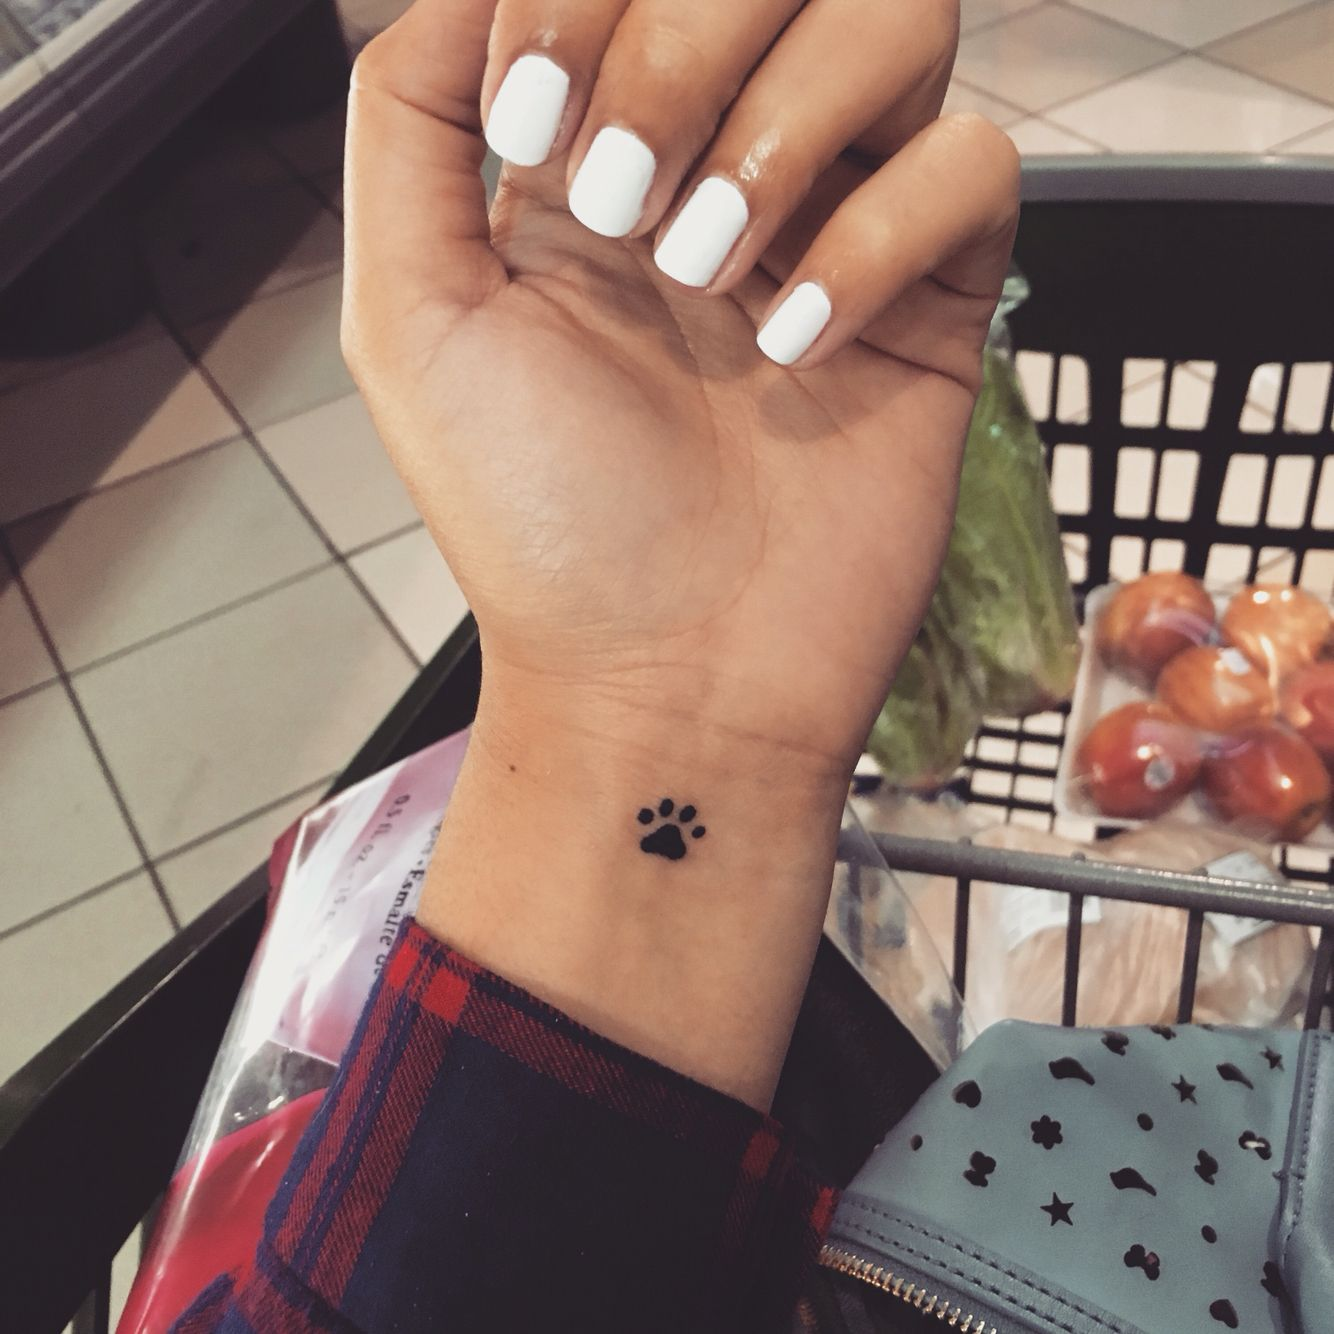 Small wrist tattoos design ideas to make you jealous ecstasycoffee - 75 Awesome Small Tattoo Ideas For Women 2017 Tiny Tattoo Designs For Girls